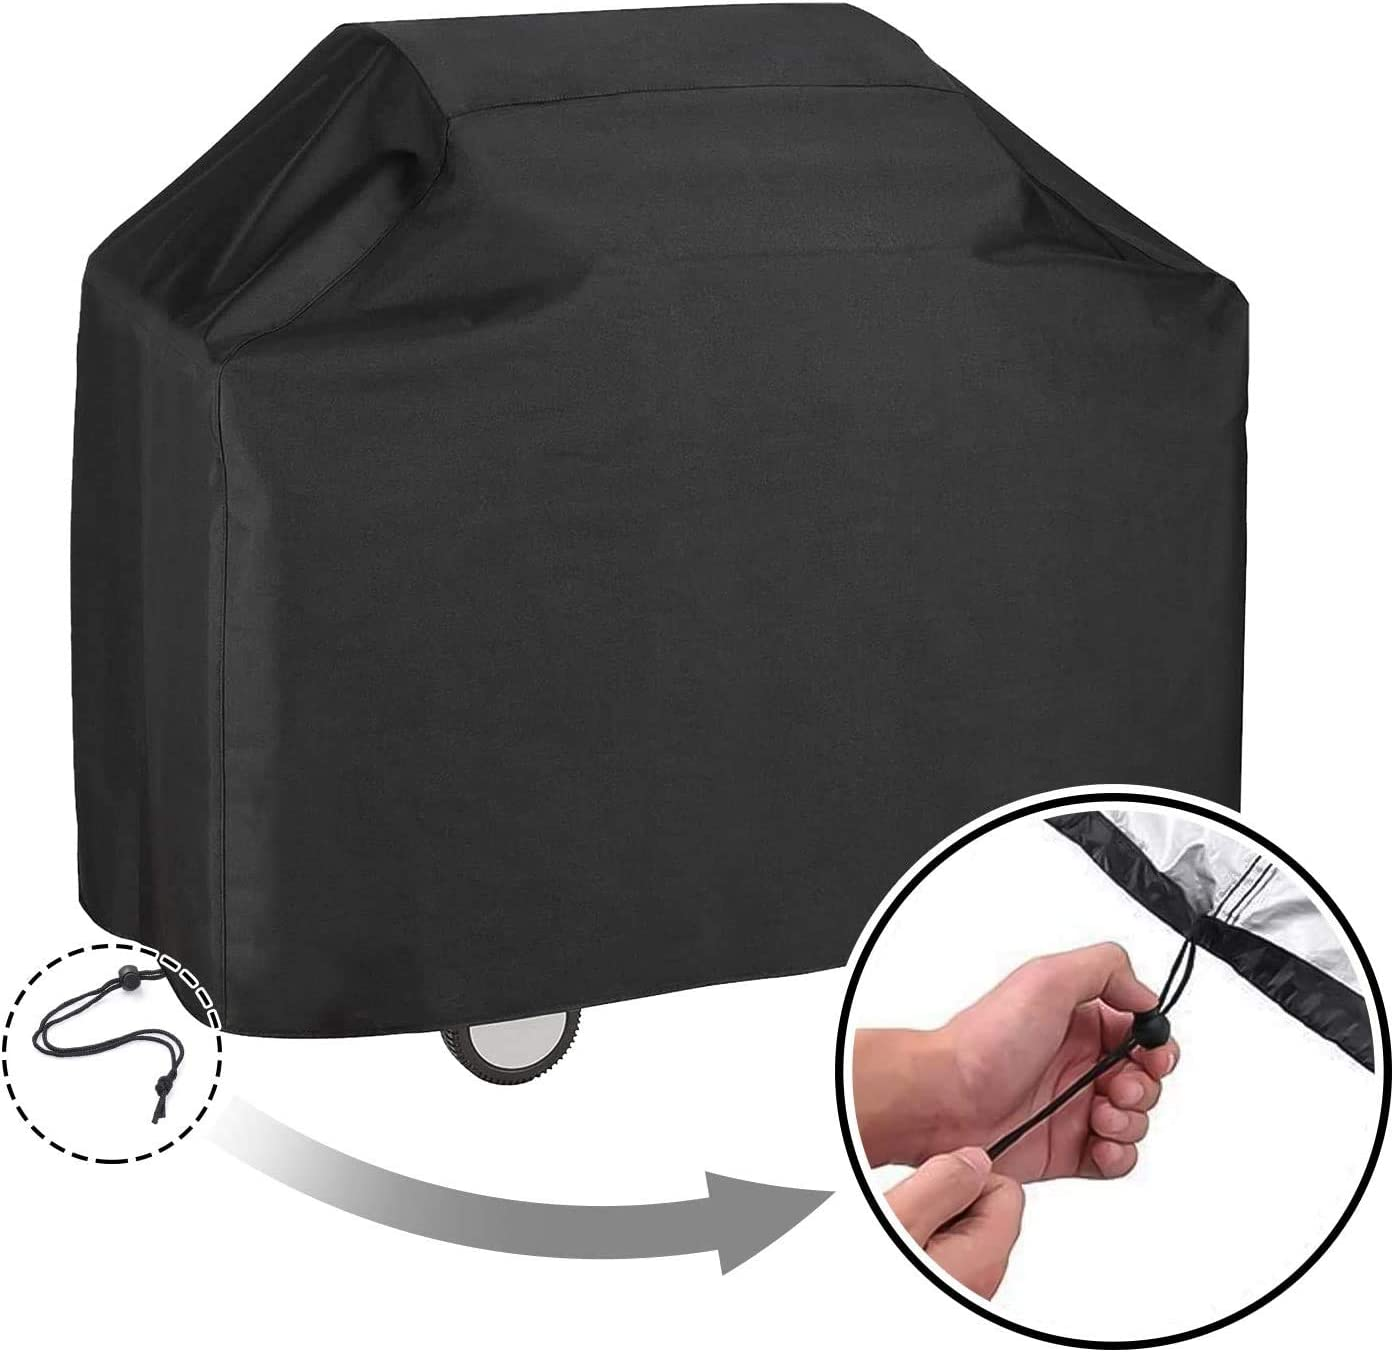 Fits Grills of Weber Char-Broil Nexgrill Brinkmann and More,Black Heavy Duty Waterproof Barbecue Gas Grill Cover Durable and Convenient weber grill cover HDJDZ 40 Outdoor BBQ Grill Cover